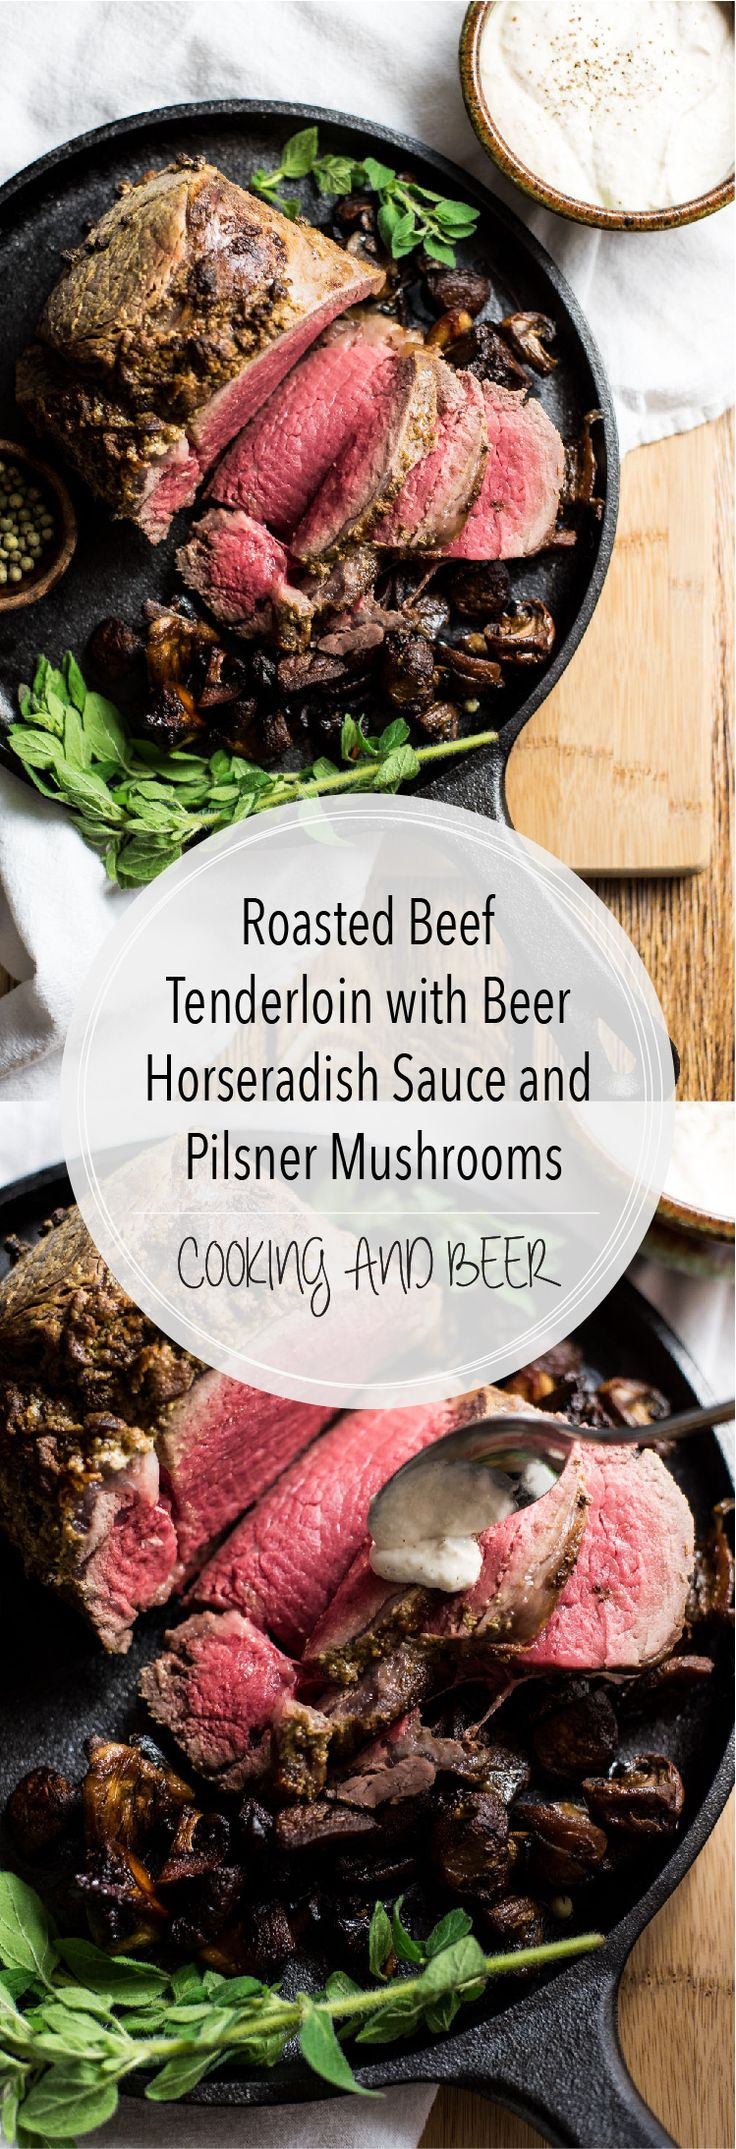 Here is a roasted beef tenderloin recipe like you've never seen before! It's adorned with pilsner mushrooms and the perfect beer horseradish sauce!